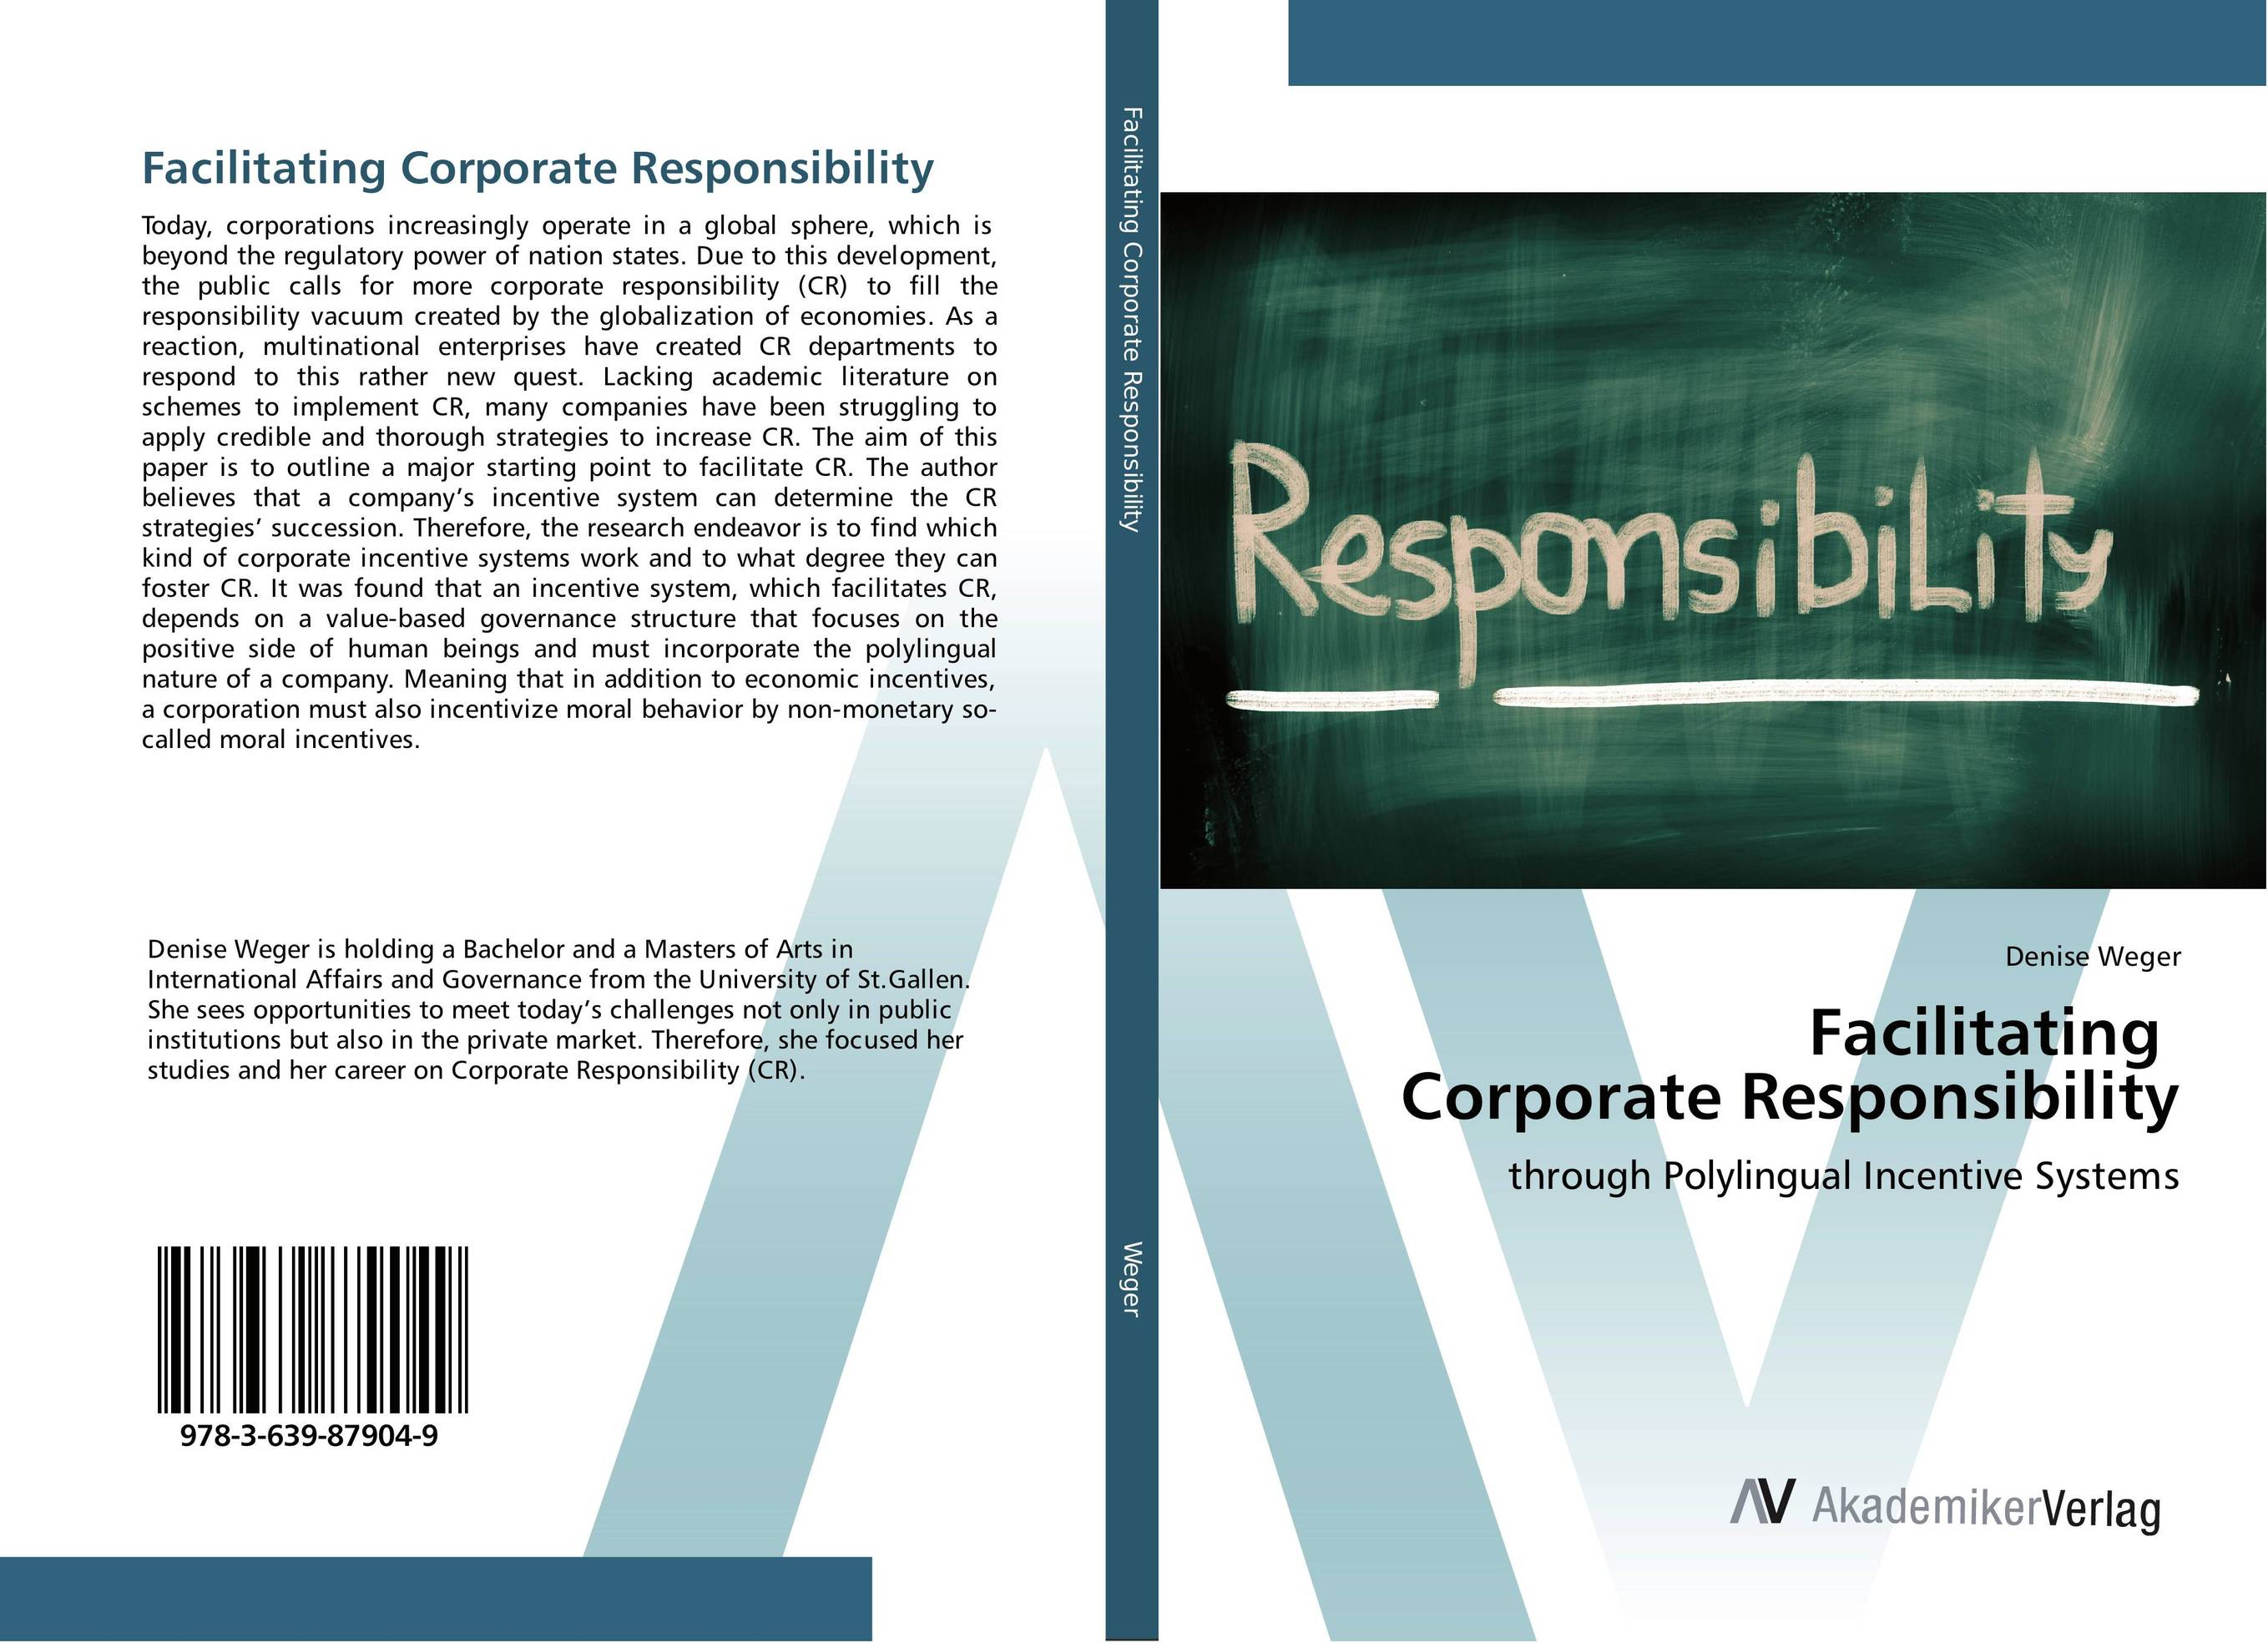 Facilitating Corporate Responsibility corporate governance and firm value